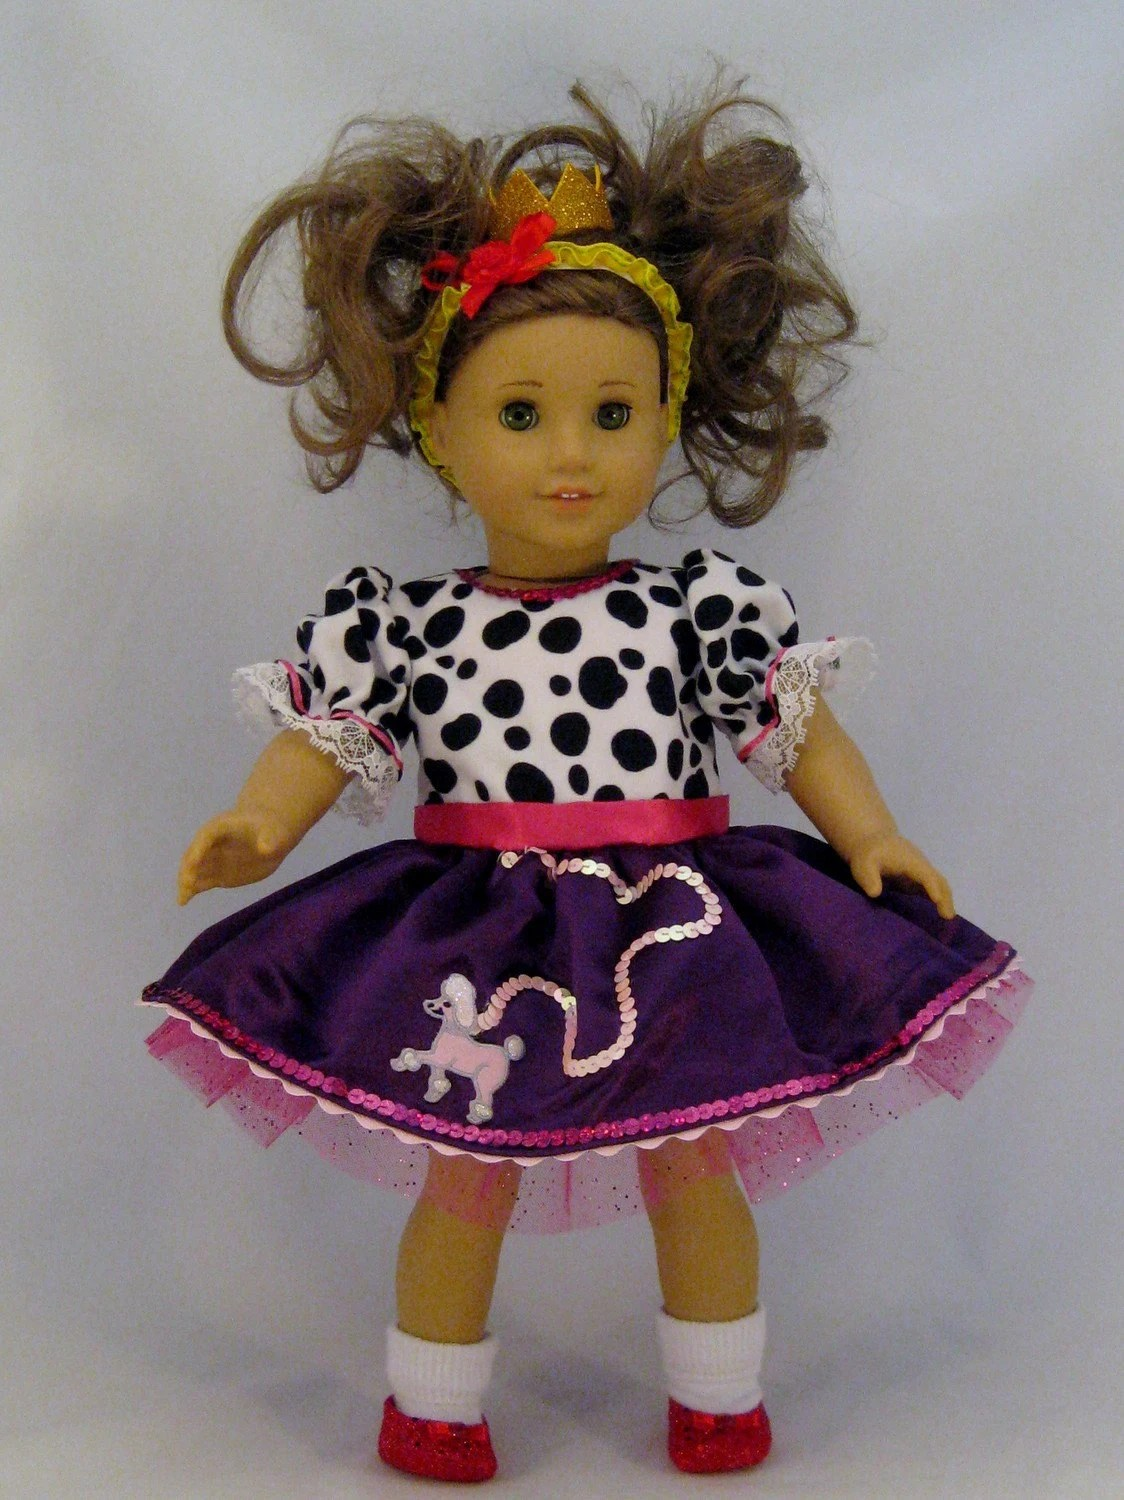 Doll Clothes Like Fancy Nancy Poodle Dress fits American Girl and other 18 inch Dolls